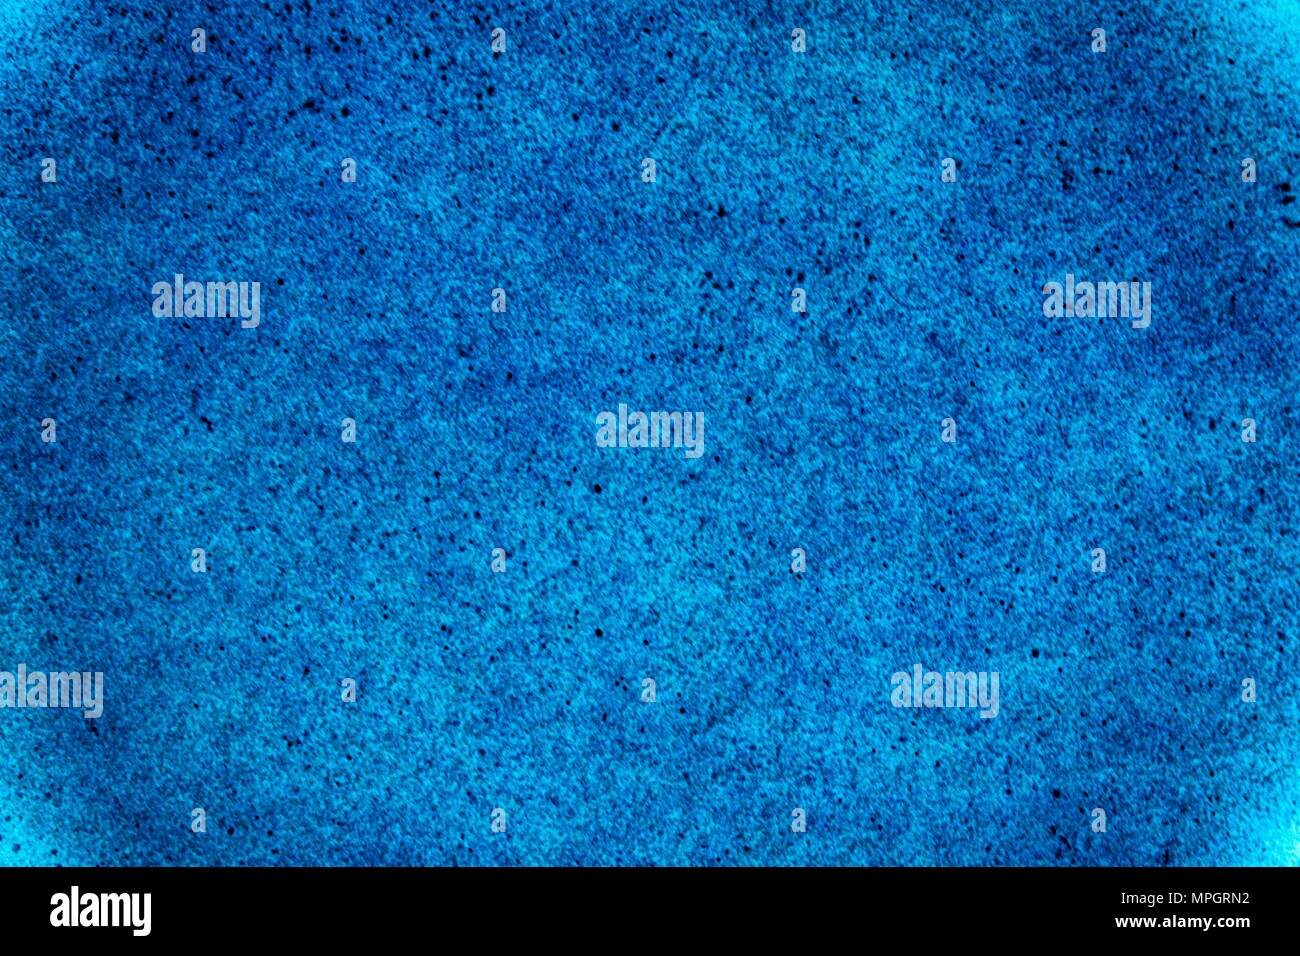 Grunge Urban Background or Dust Texture Overlay Distress Grain and Simply place over any Object to Create grungy Effect abstract splatter, dirty poste - Stock Image